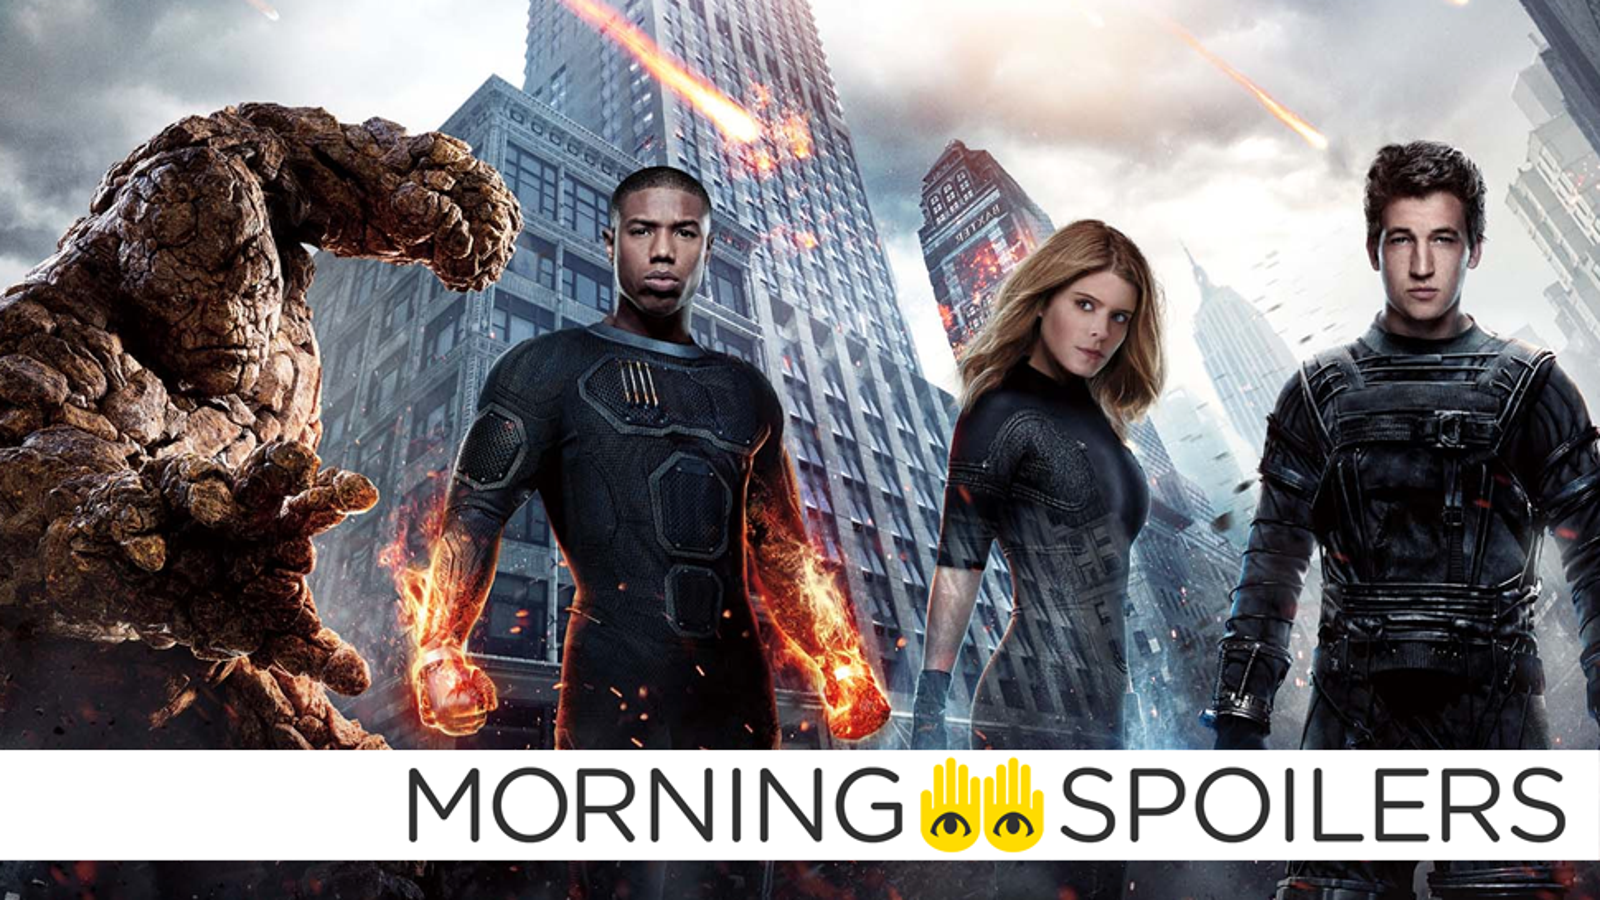 A Totally Wild Rumor About the Next Fantastic Four Film